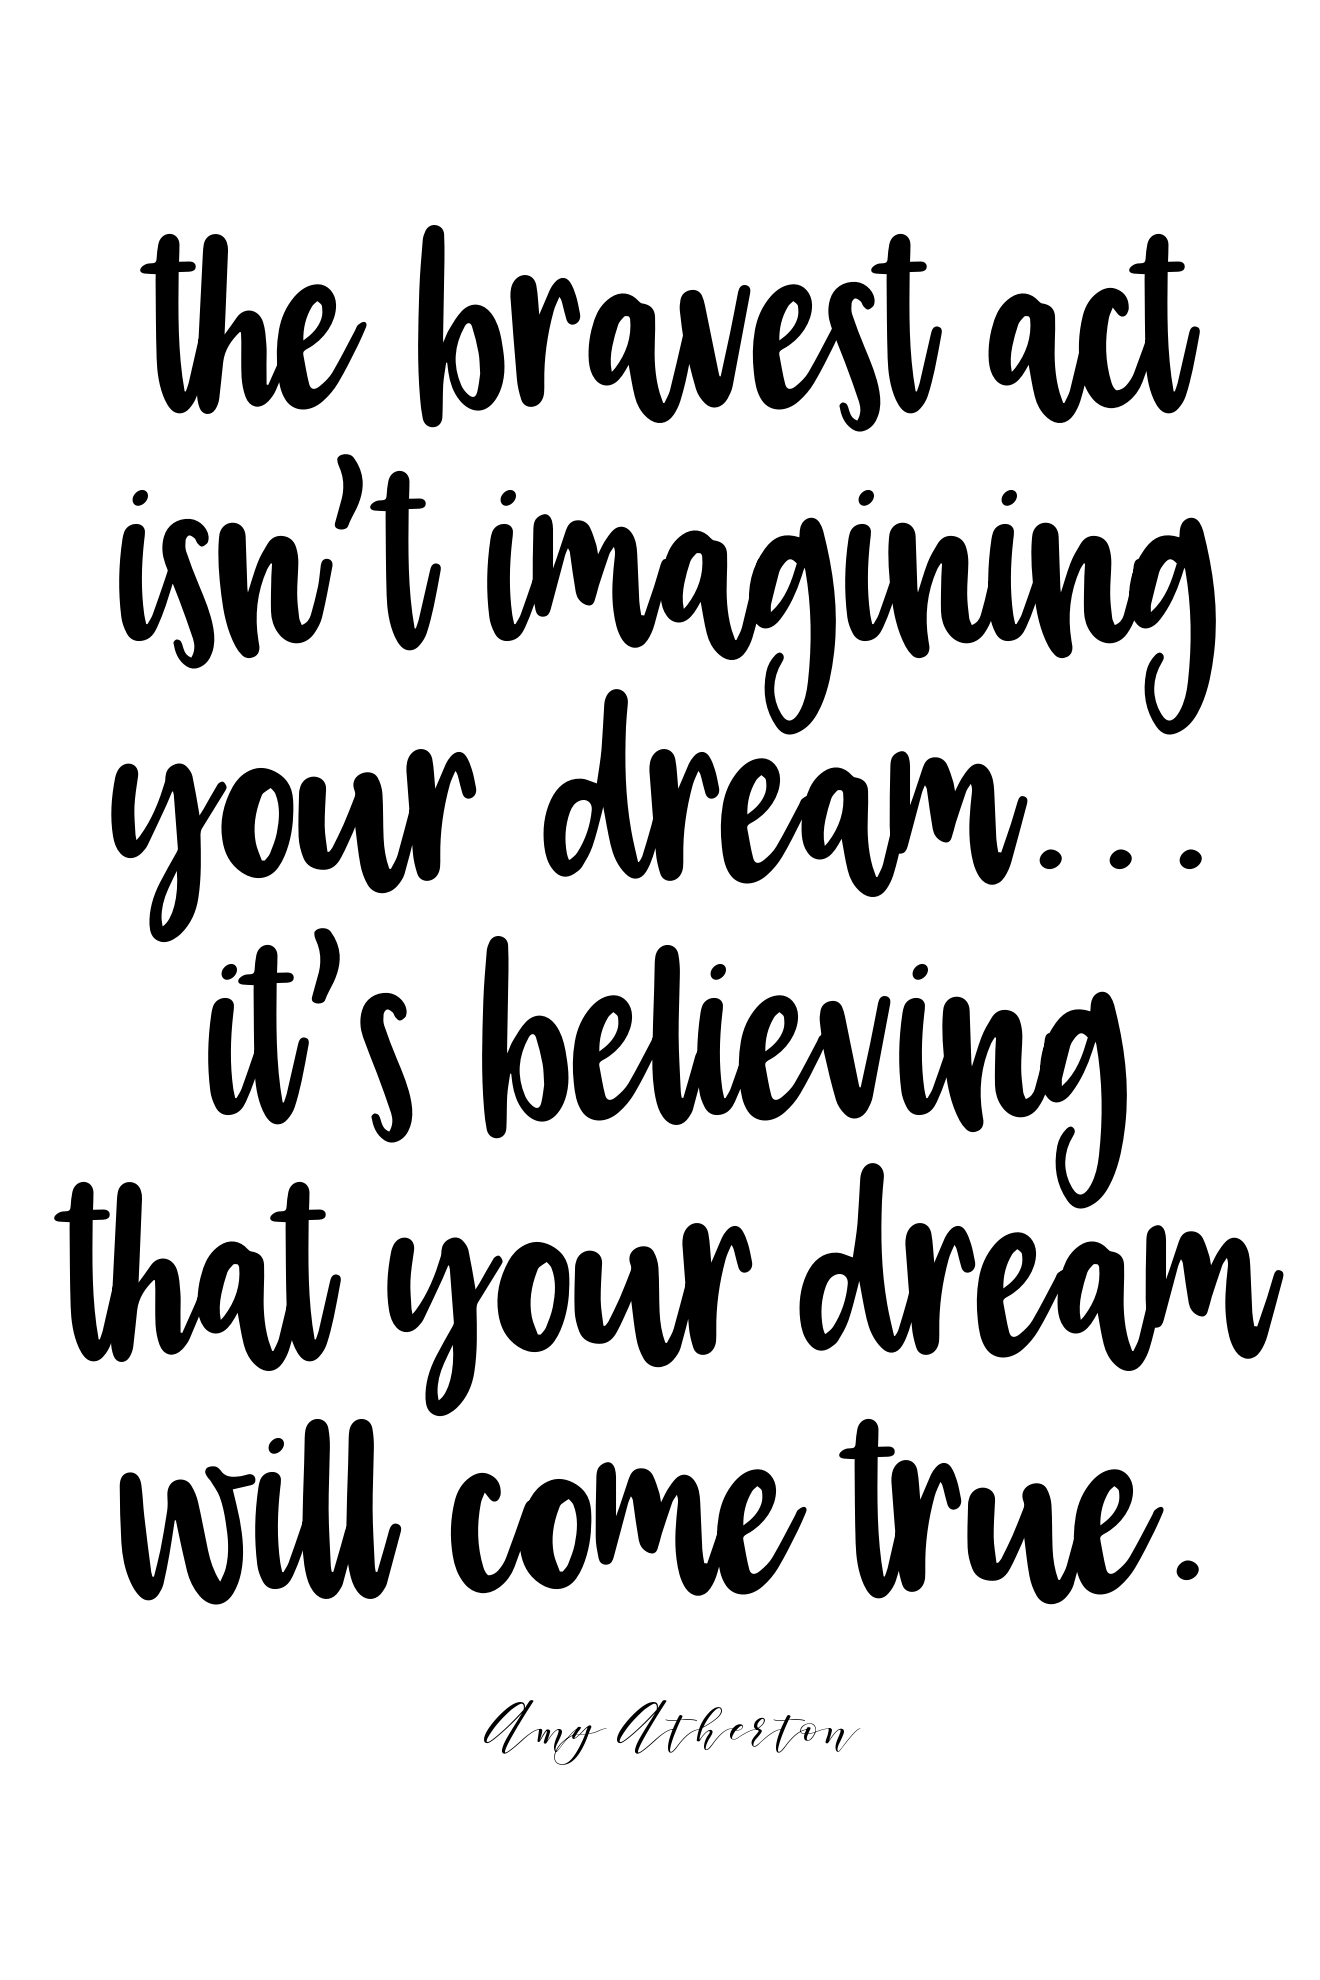 The bravest act isn't imagining your dream... It's believe your dream will come true. @amybakeshealthy